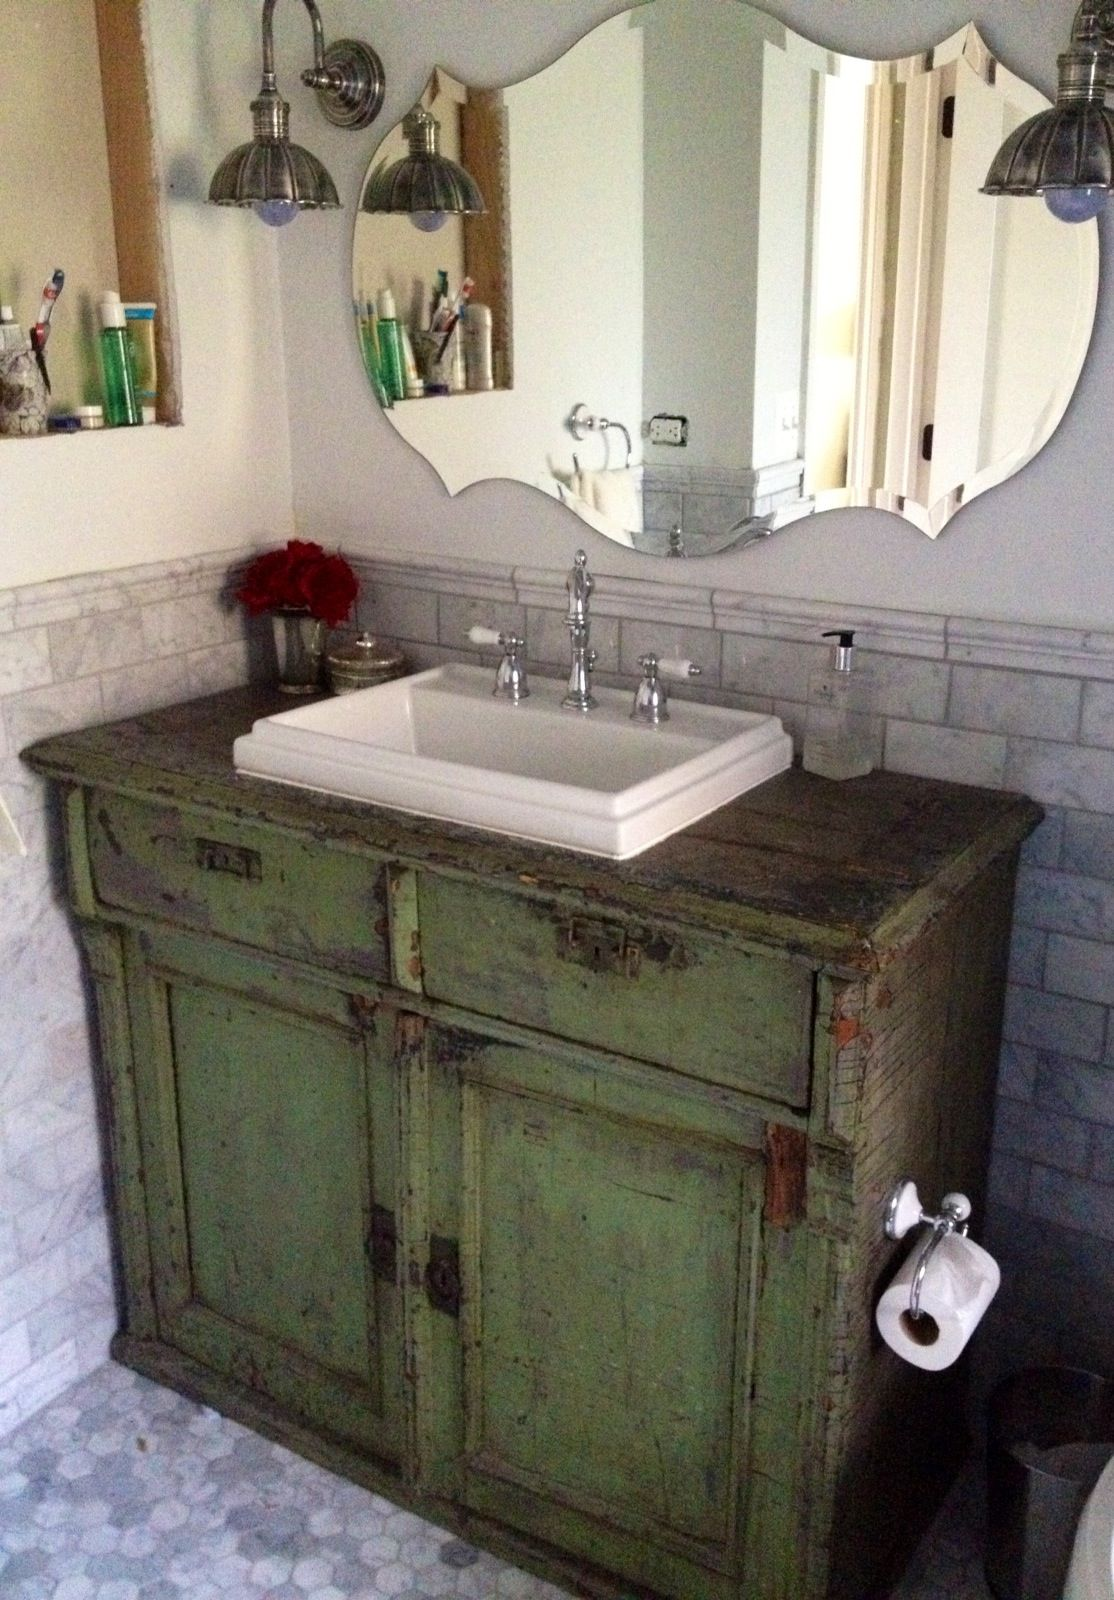 Antique Server Used As A Bathroom Vanity Unique Bathroom Vanity